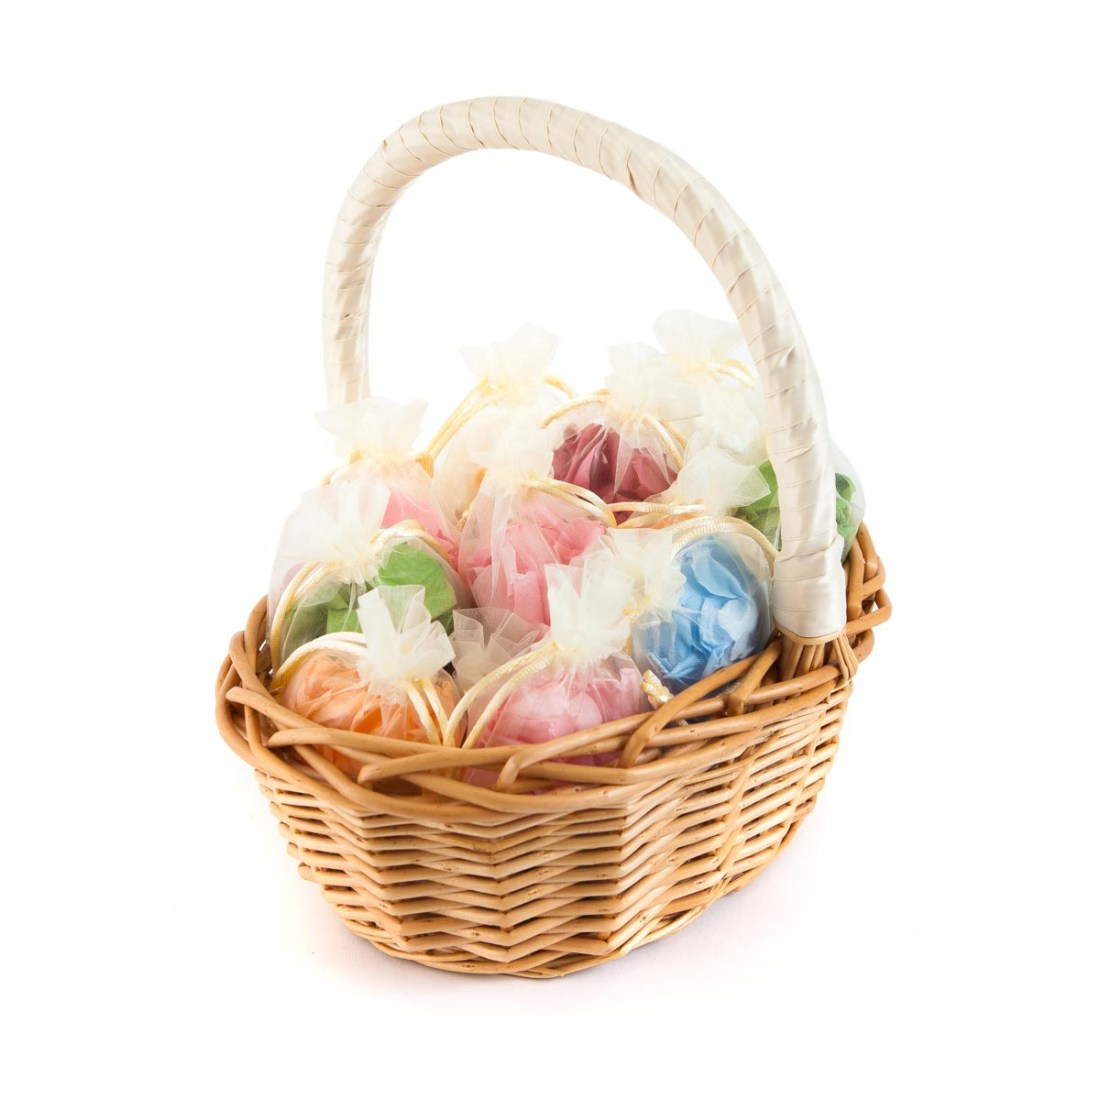 Confetti Moment - a basket of Coloured Rose Petal Bags